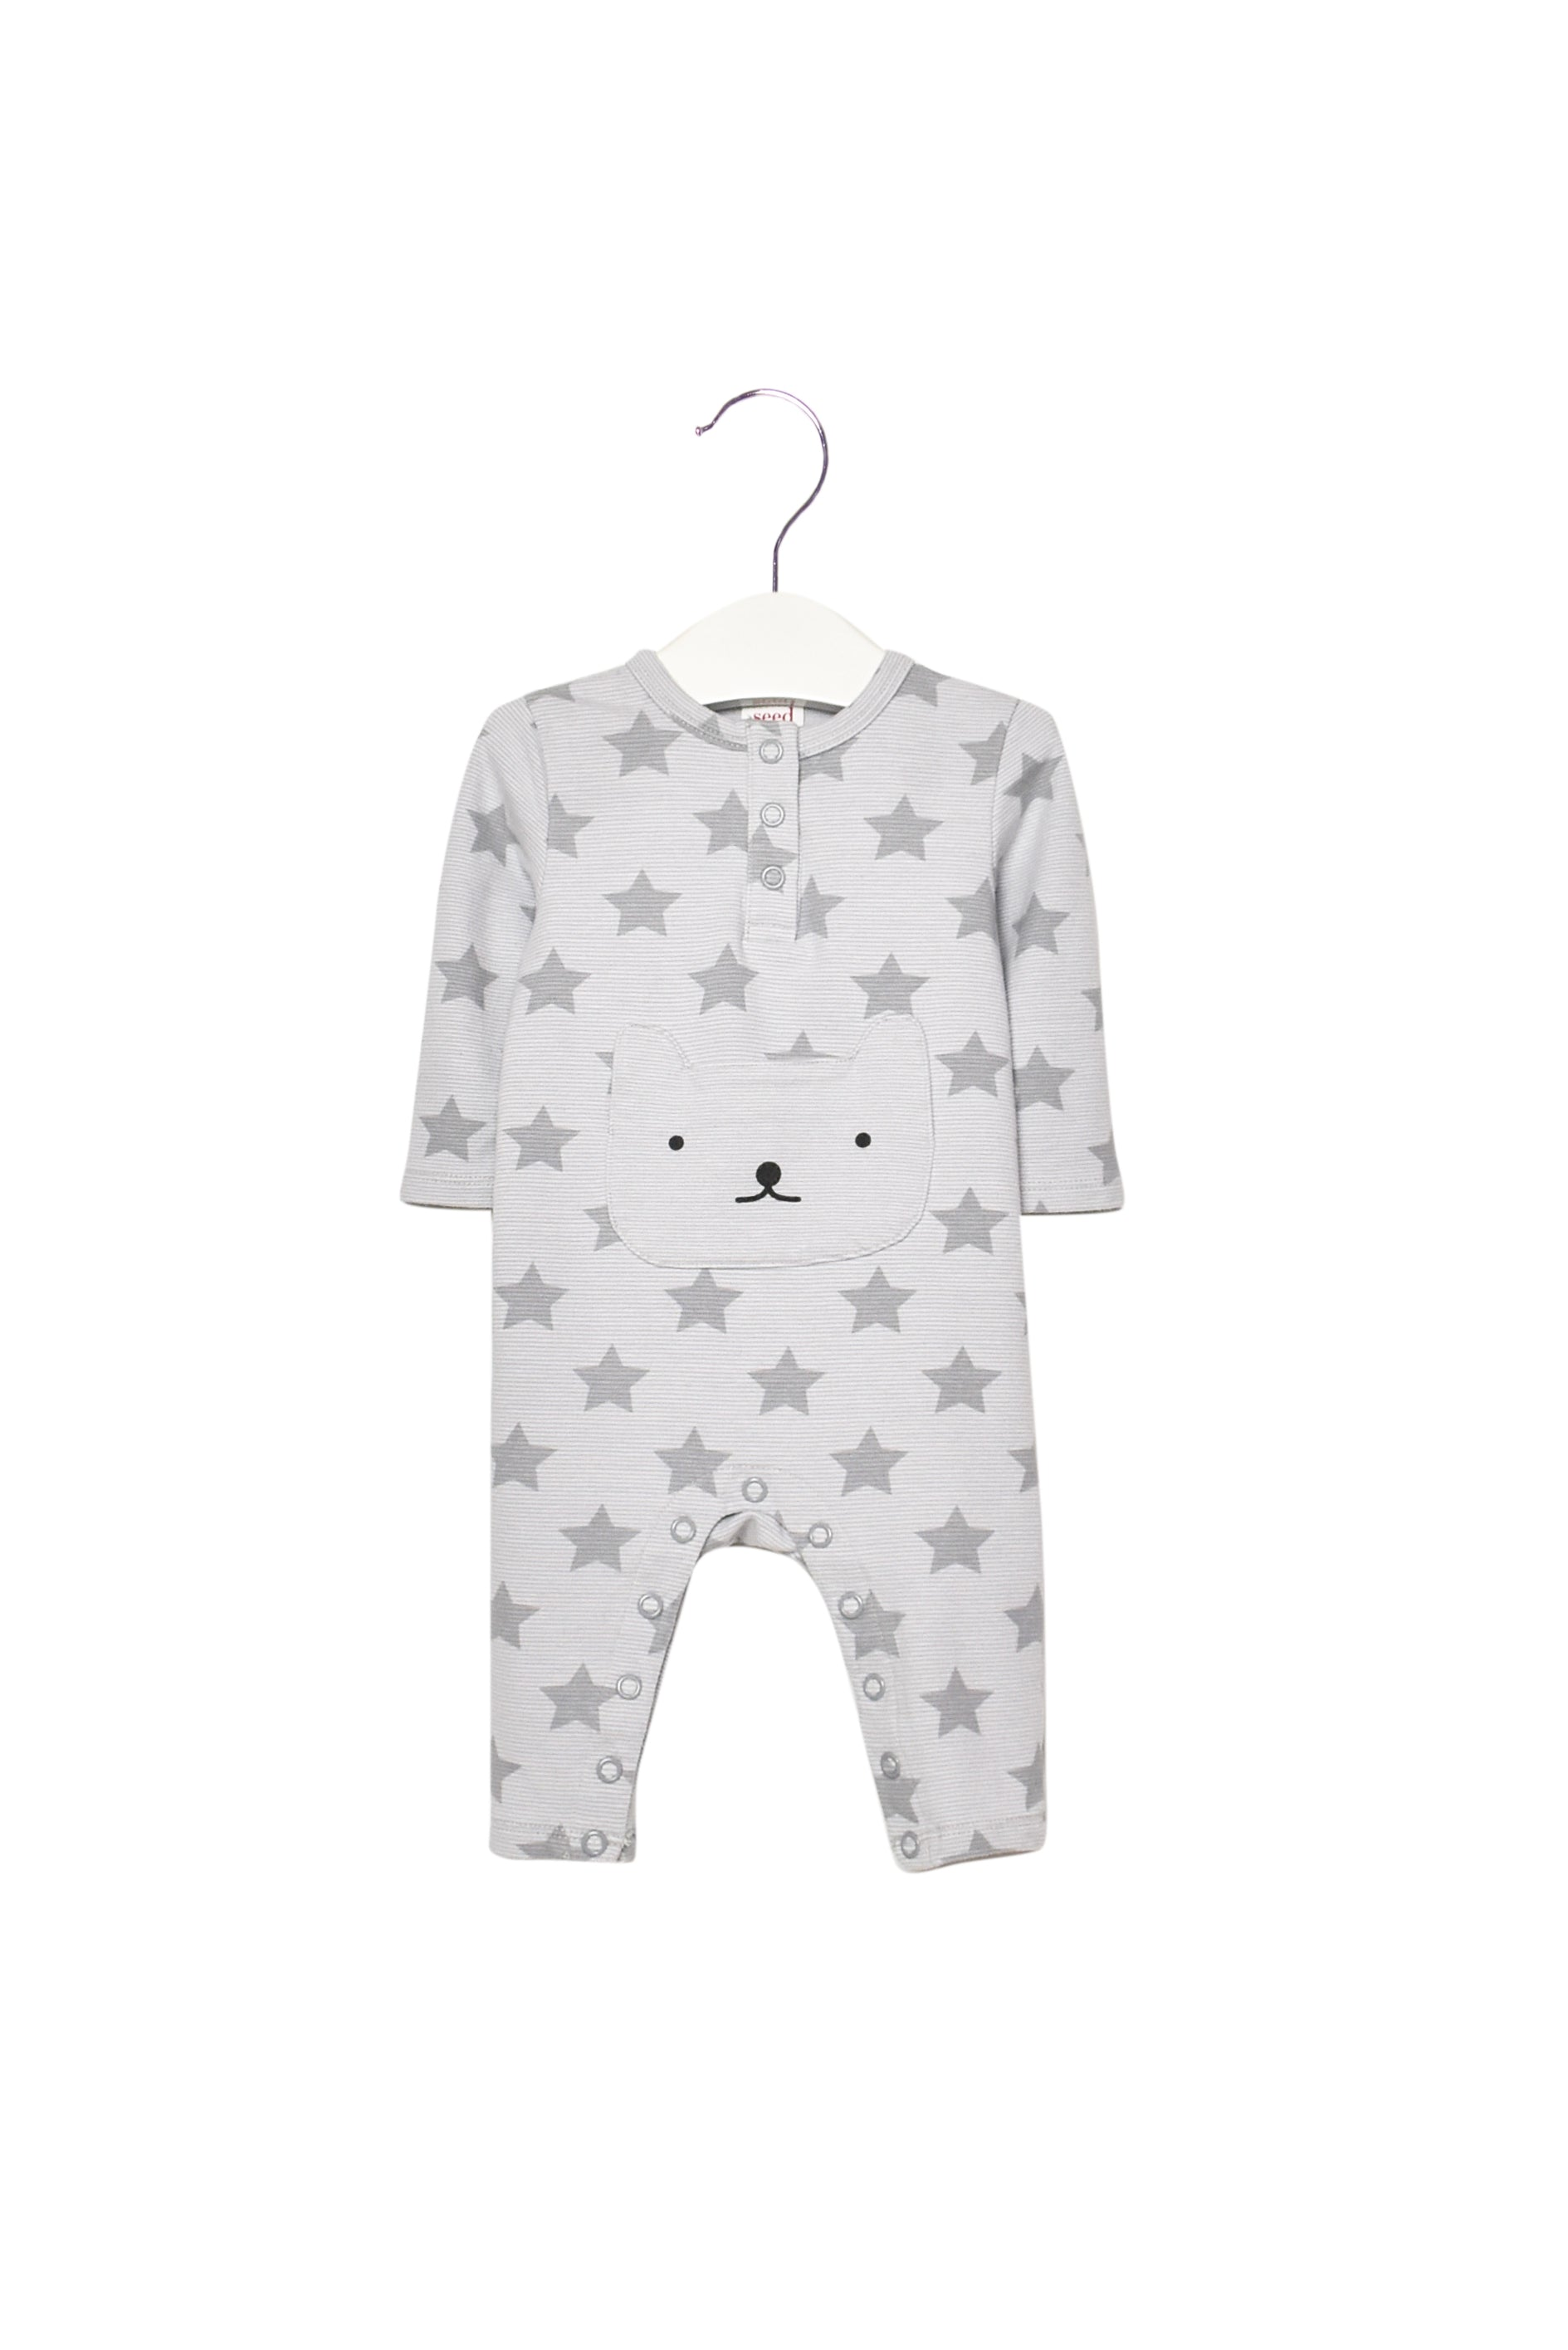 10011958 Seed Baby ~ Jumpsuit 0-3M at Retykle